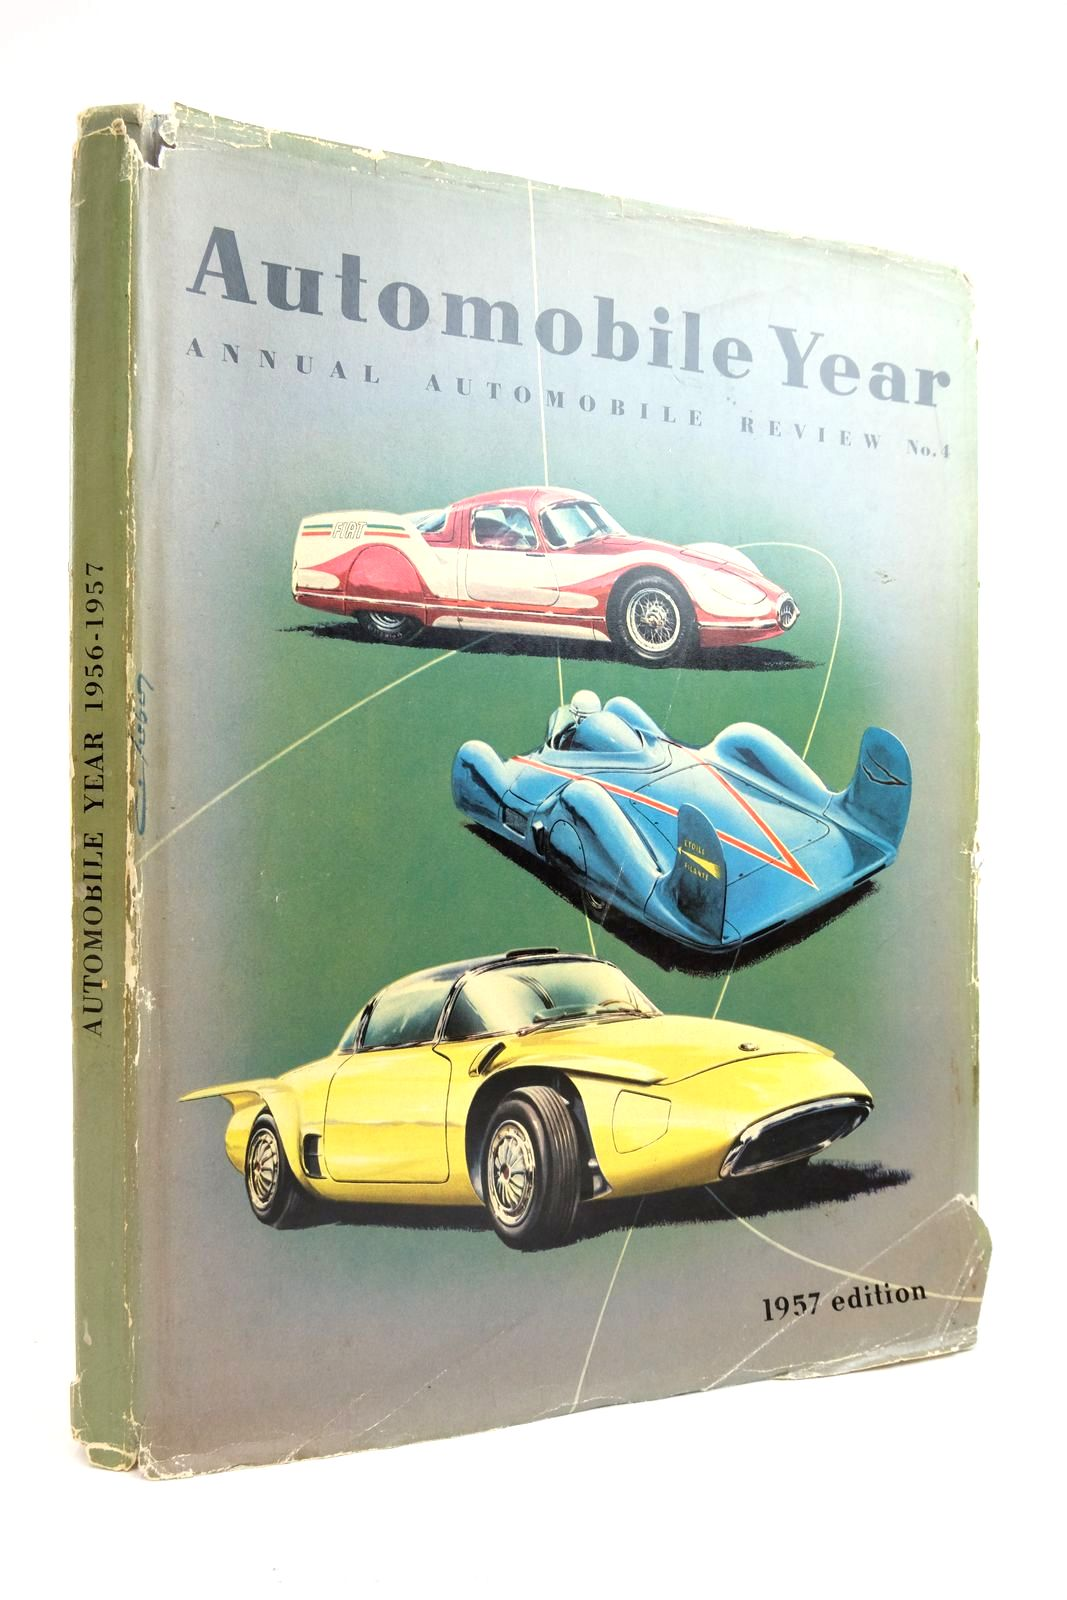 Photo of AUTOMOBILE YEAR 1956-1957 ANNUAL AUTOMOBILE REVIEW No. 4- Stock Number: 2135375